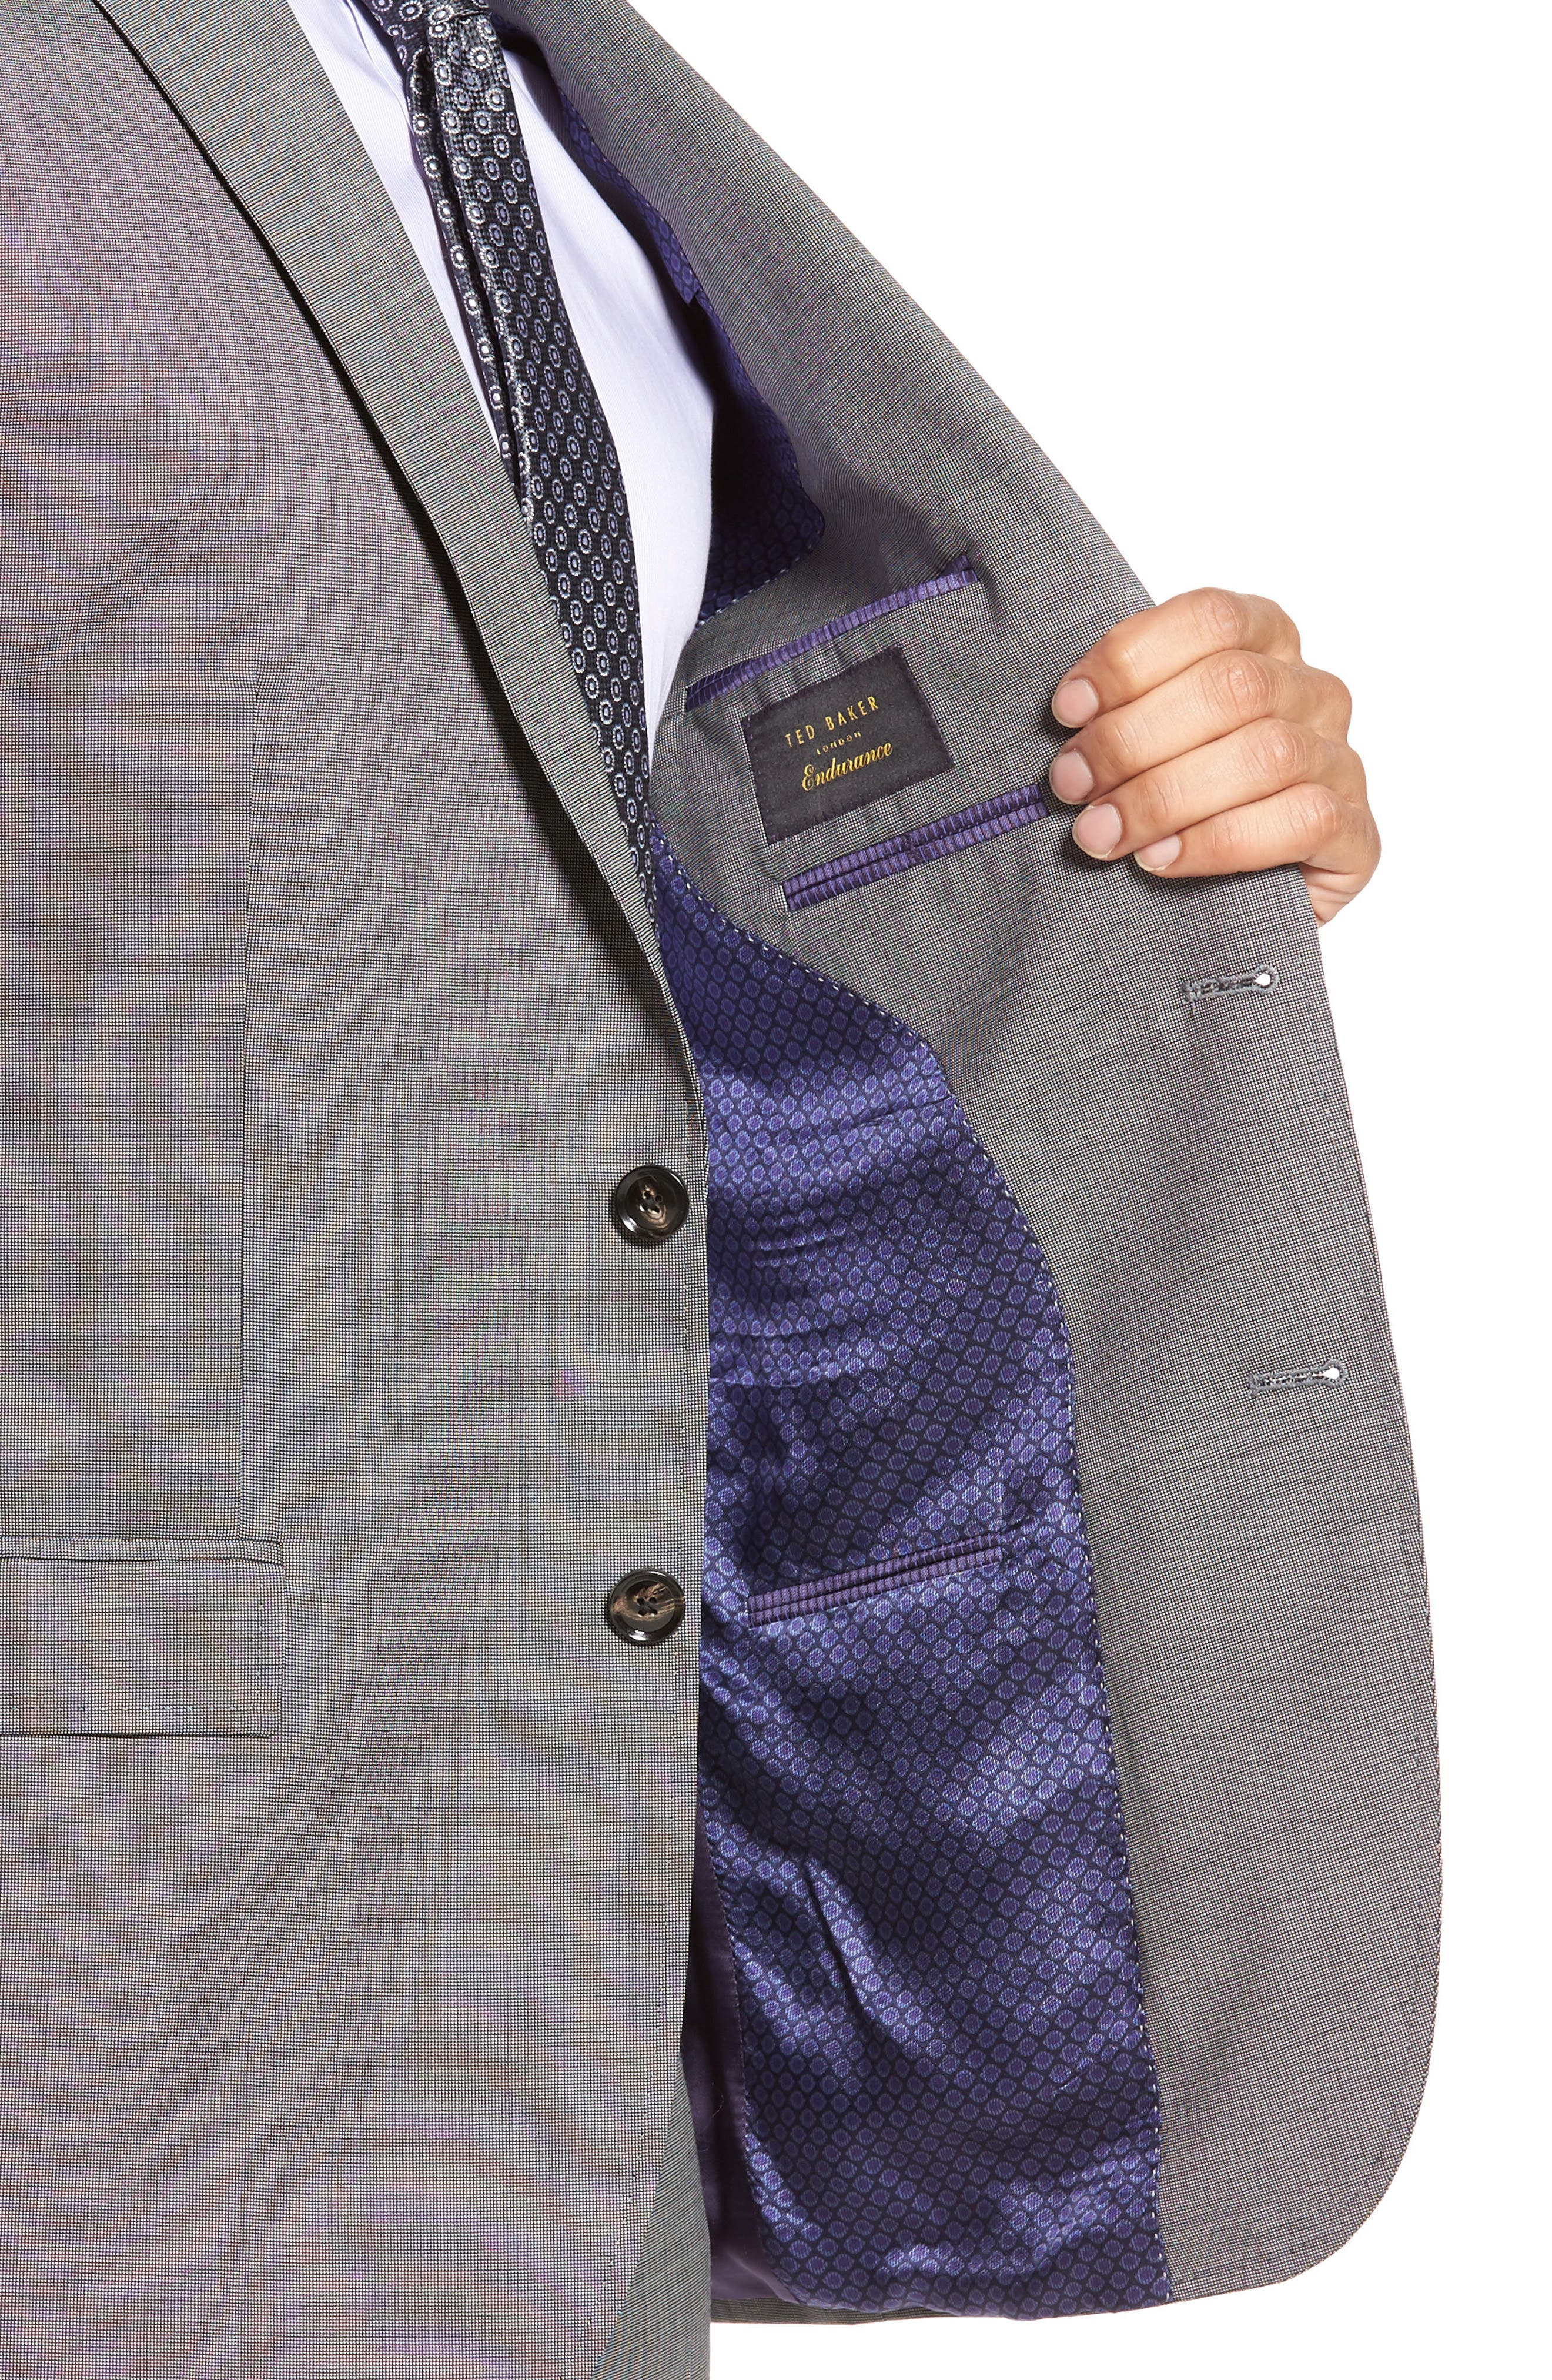 Jay Trim Fit Solid Wool Suit,                             Alternate thumbnail 4, color,                             Light Grey